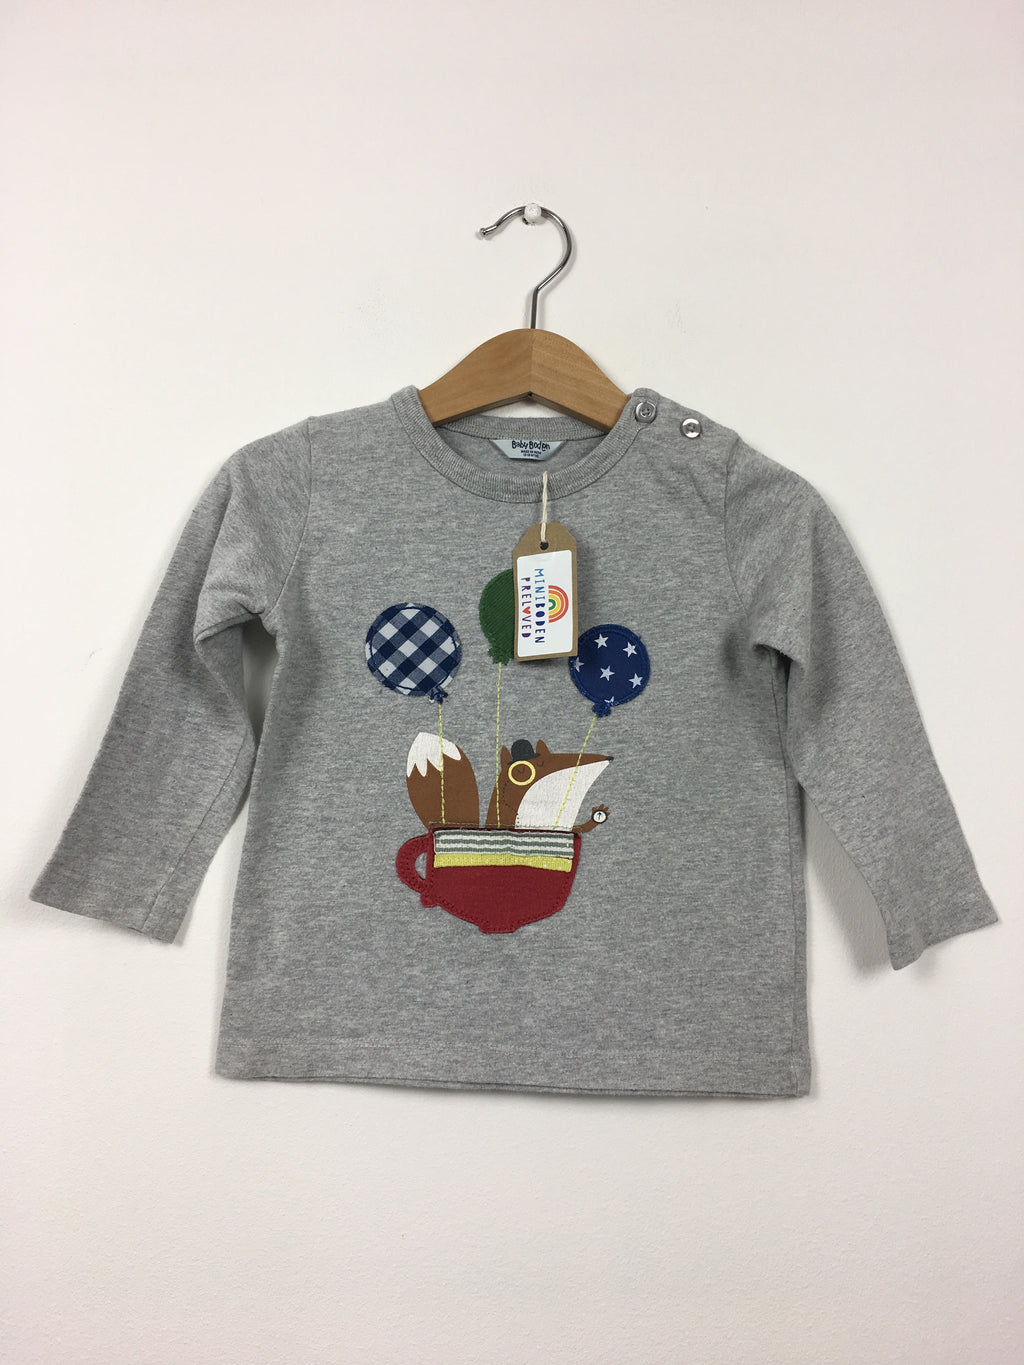 Appliqué Squirrel Grey Top (12-18 Months)